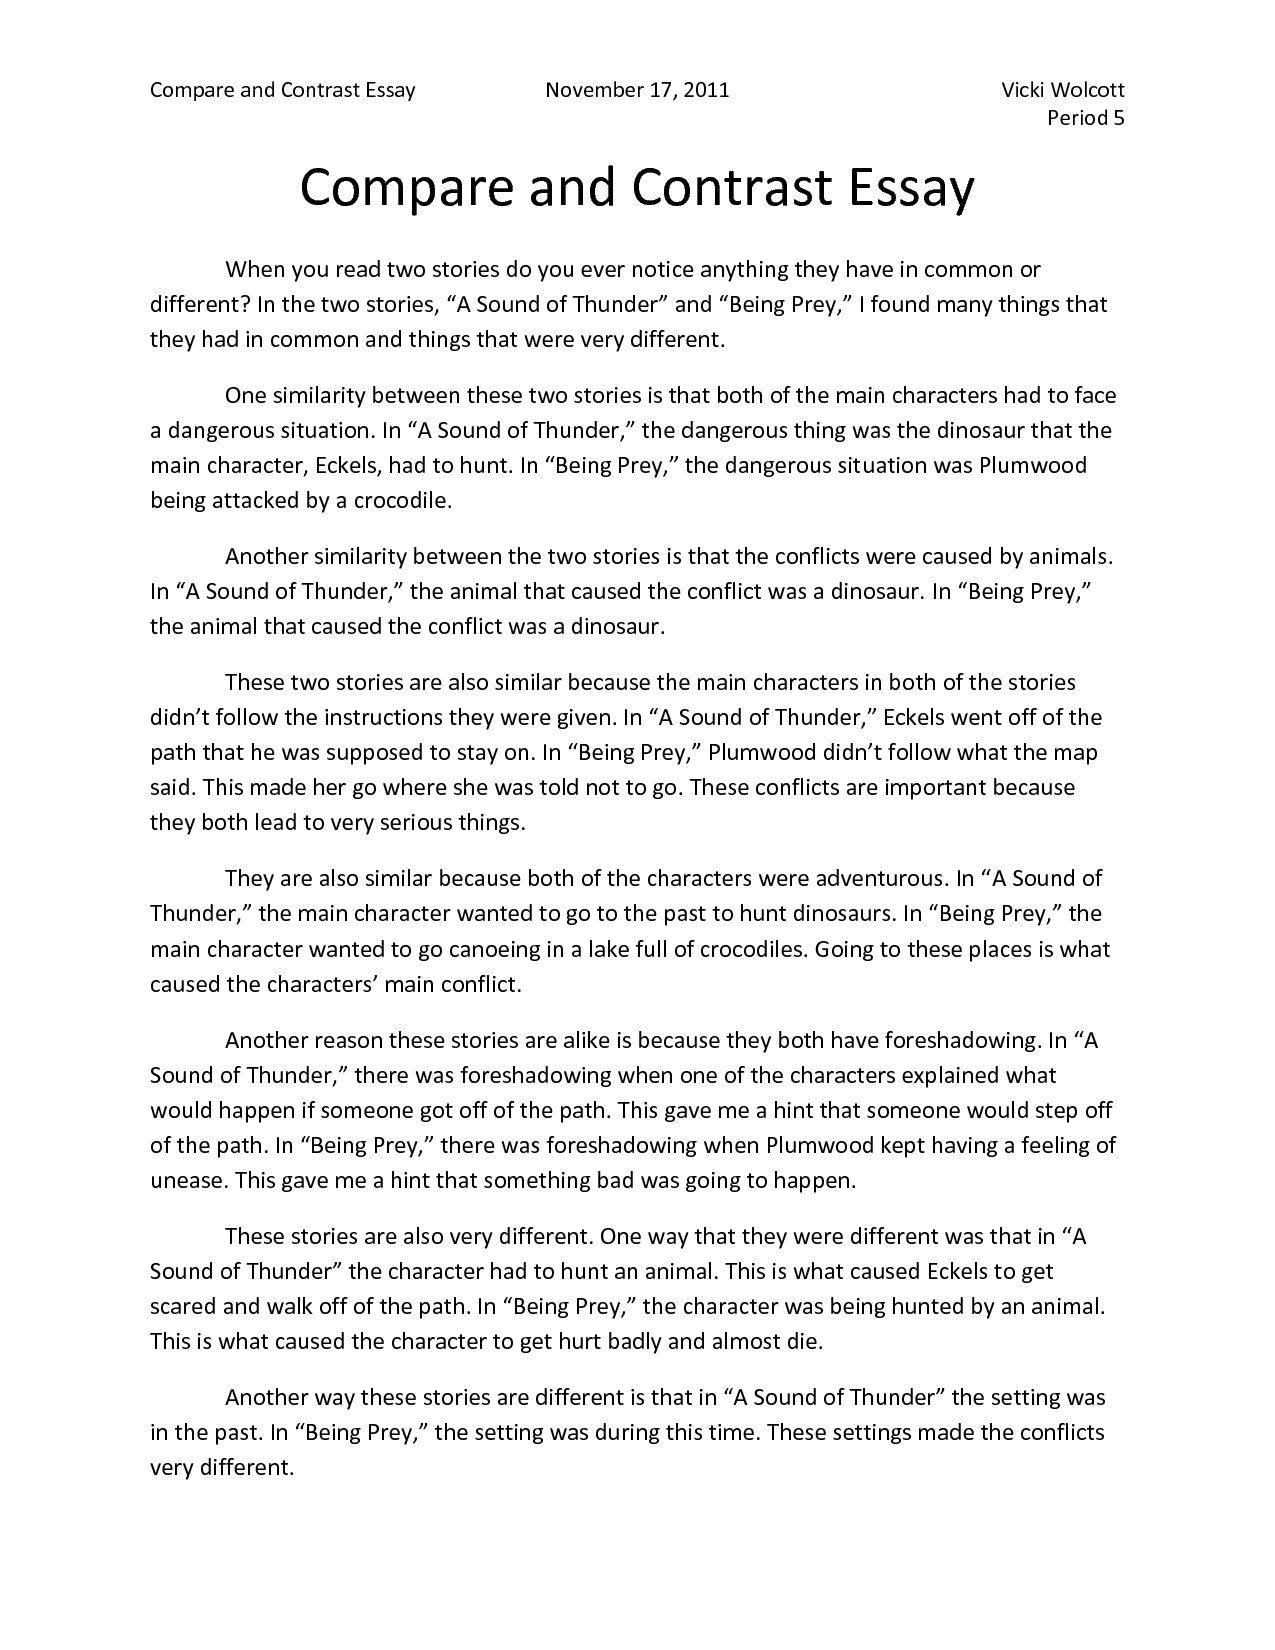 003 Perfect Essays Compare And Contrast Essay Introduction Example How To Write College Striking Comparison Examples Free Pdf 4th Grade For 5th Full